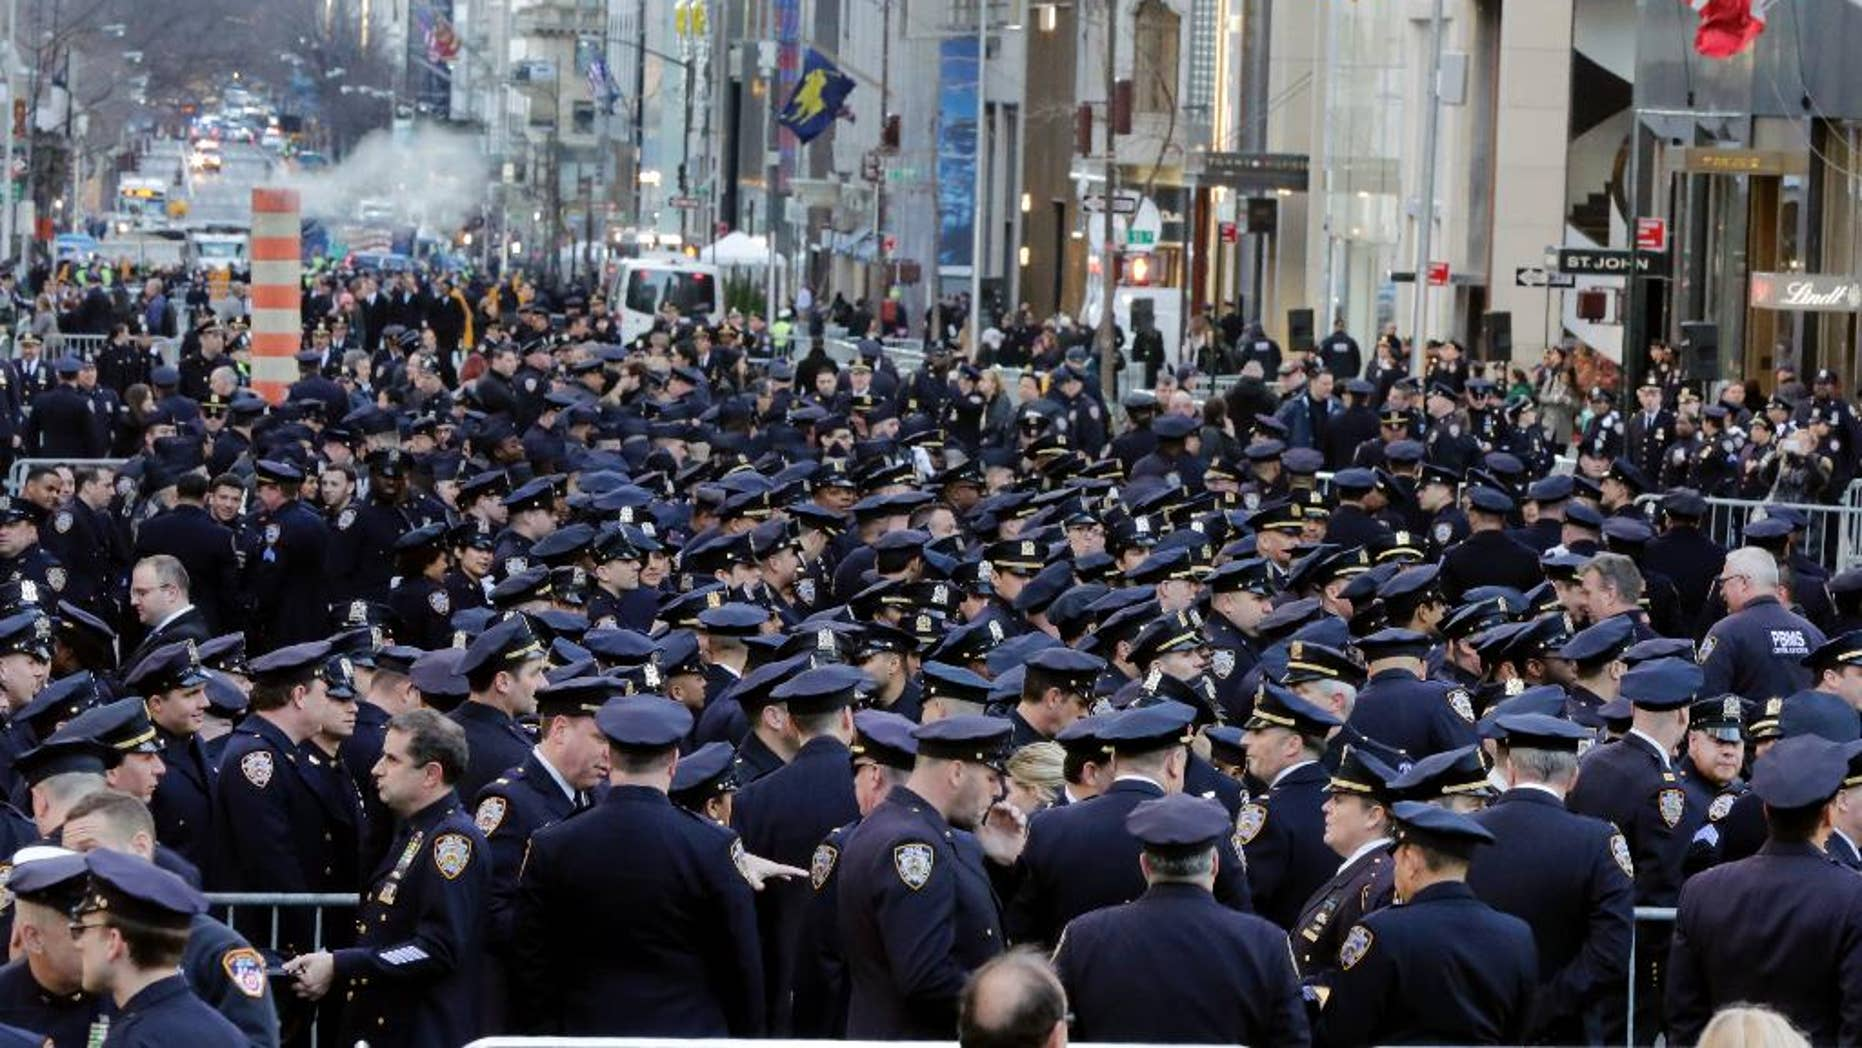 Police officers fill New York's Fifth Avenue ahead of the funeral.